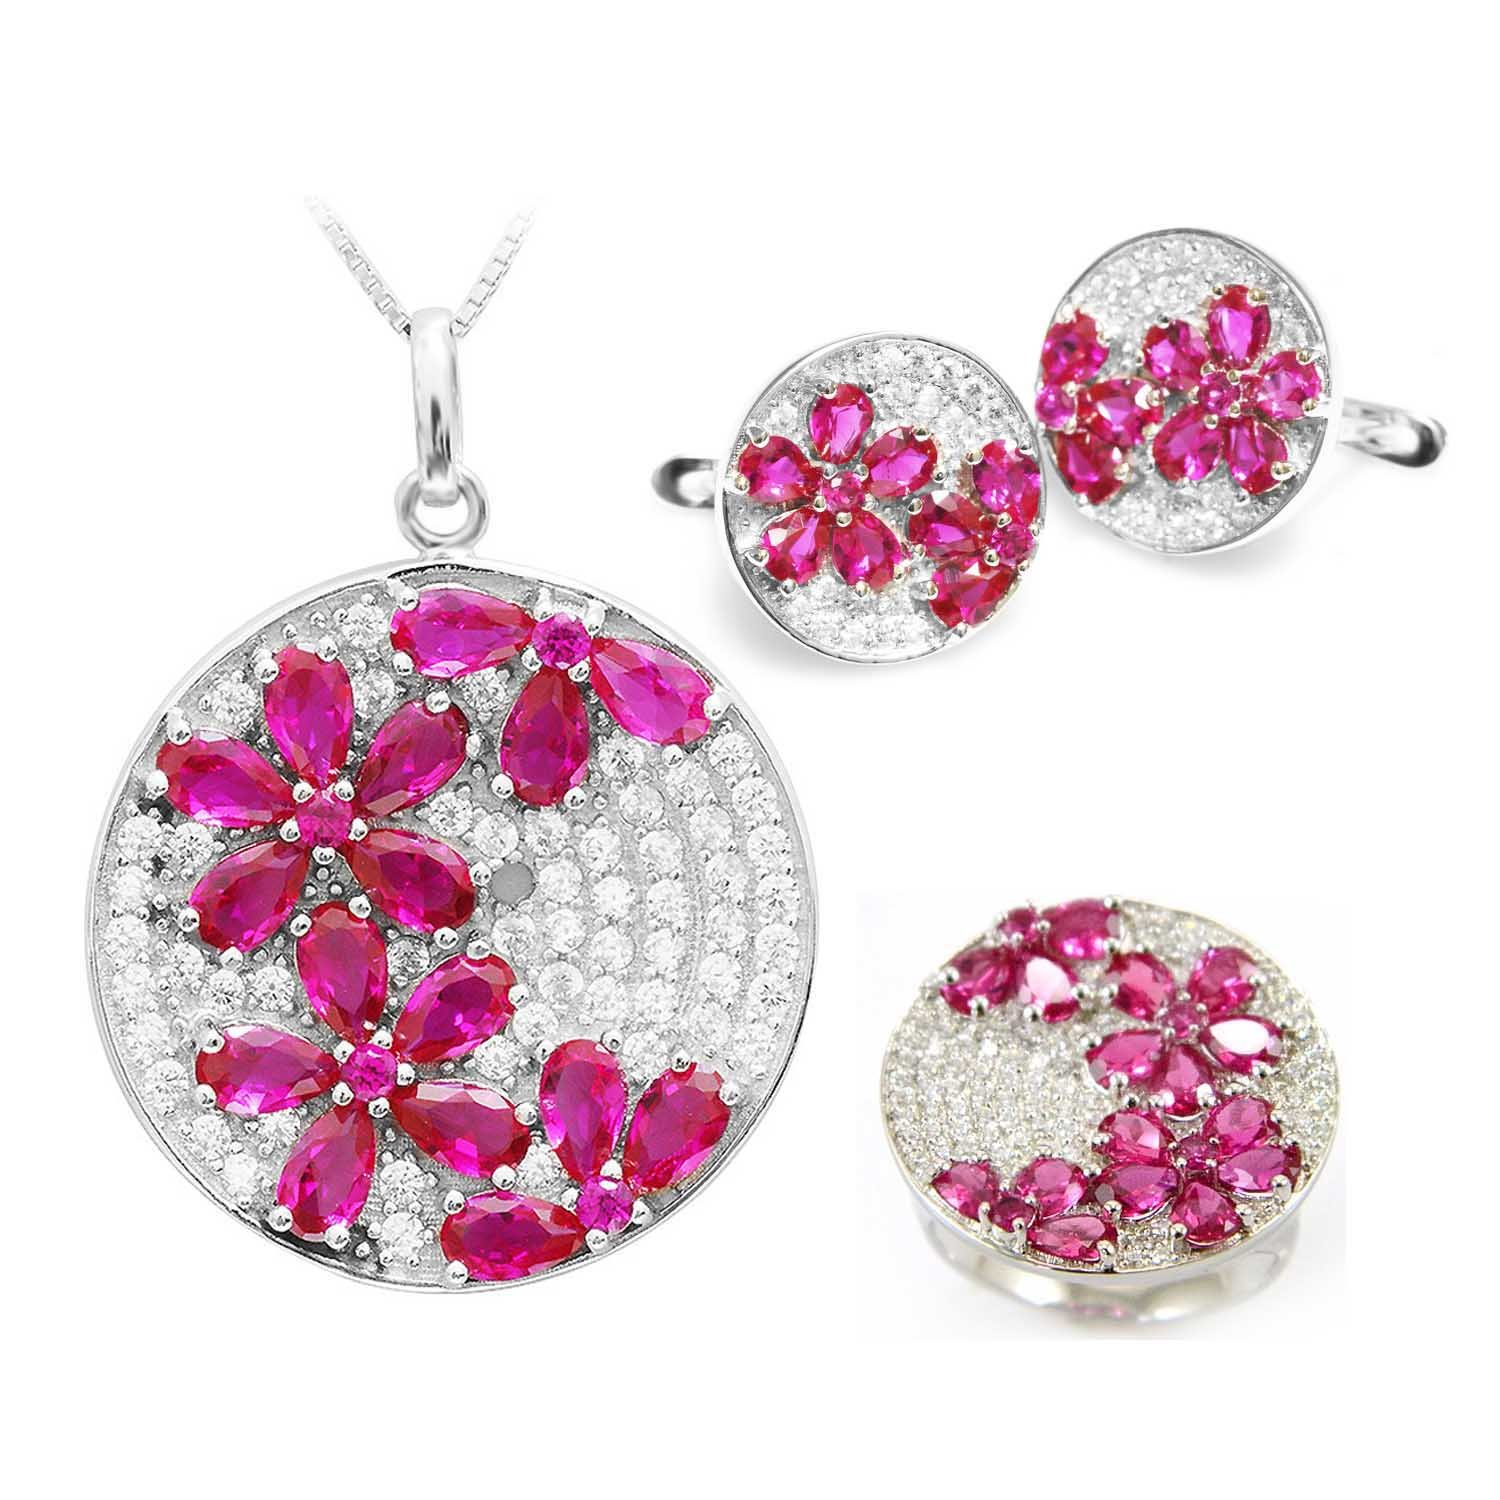 JewelryPalace Women's Luxury Pear Cut Created Red Ruby Pendant Clip On Earrings Engagement Ring Sets 925 Sterling Silver Size 7